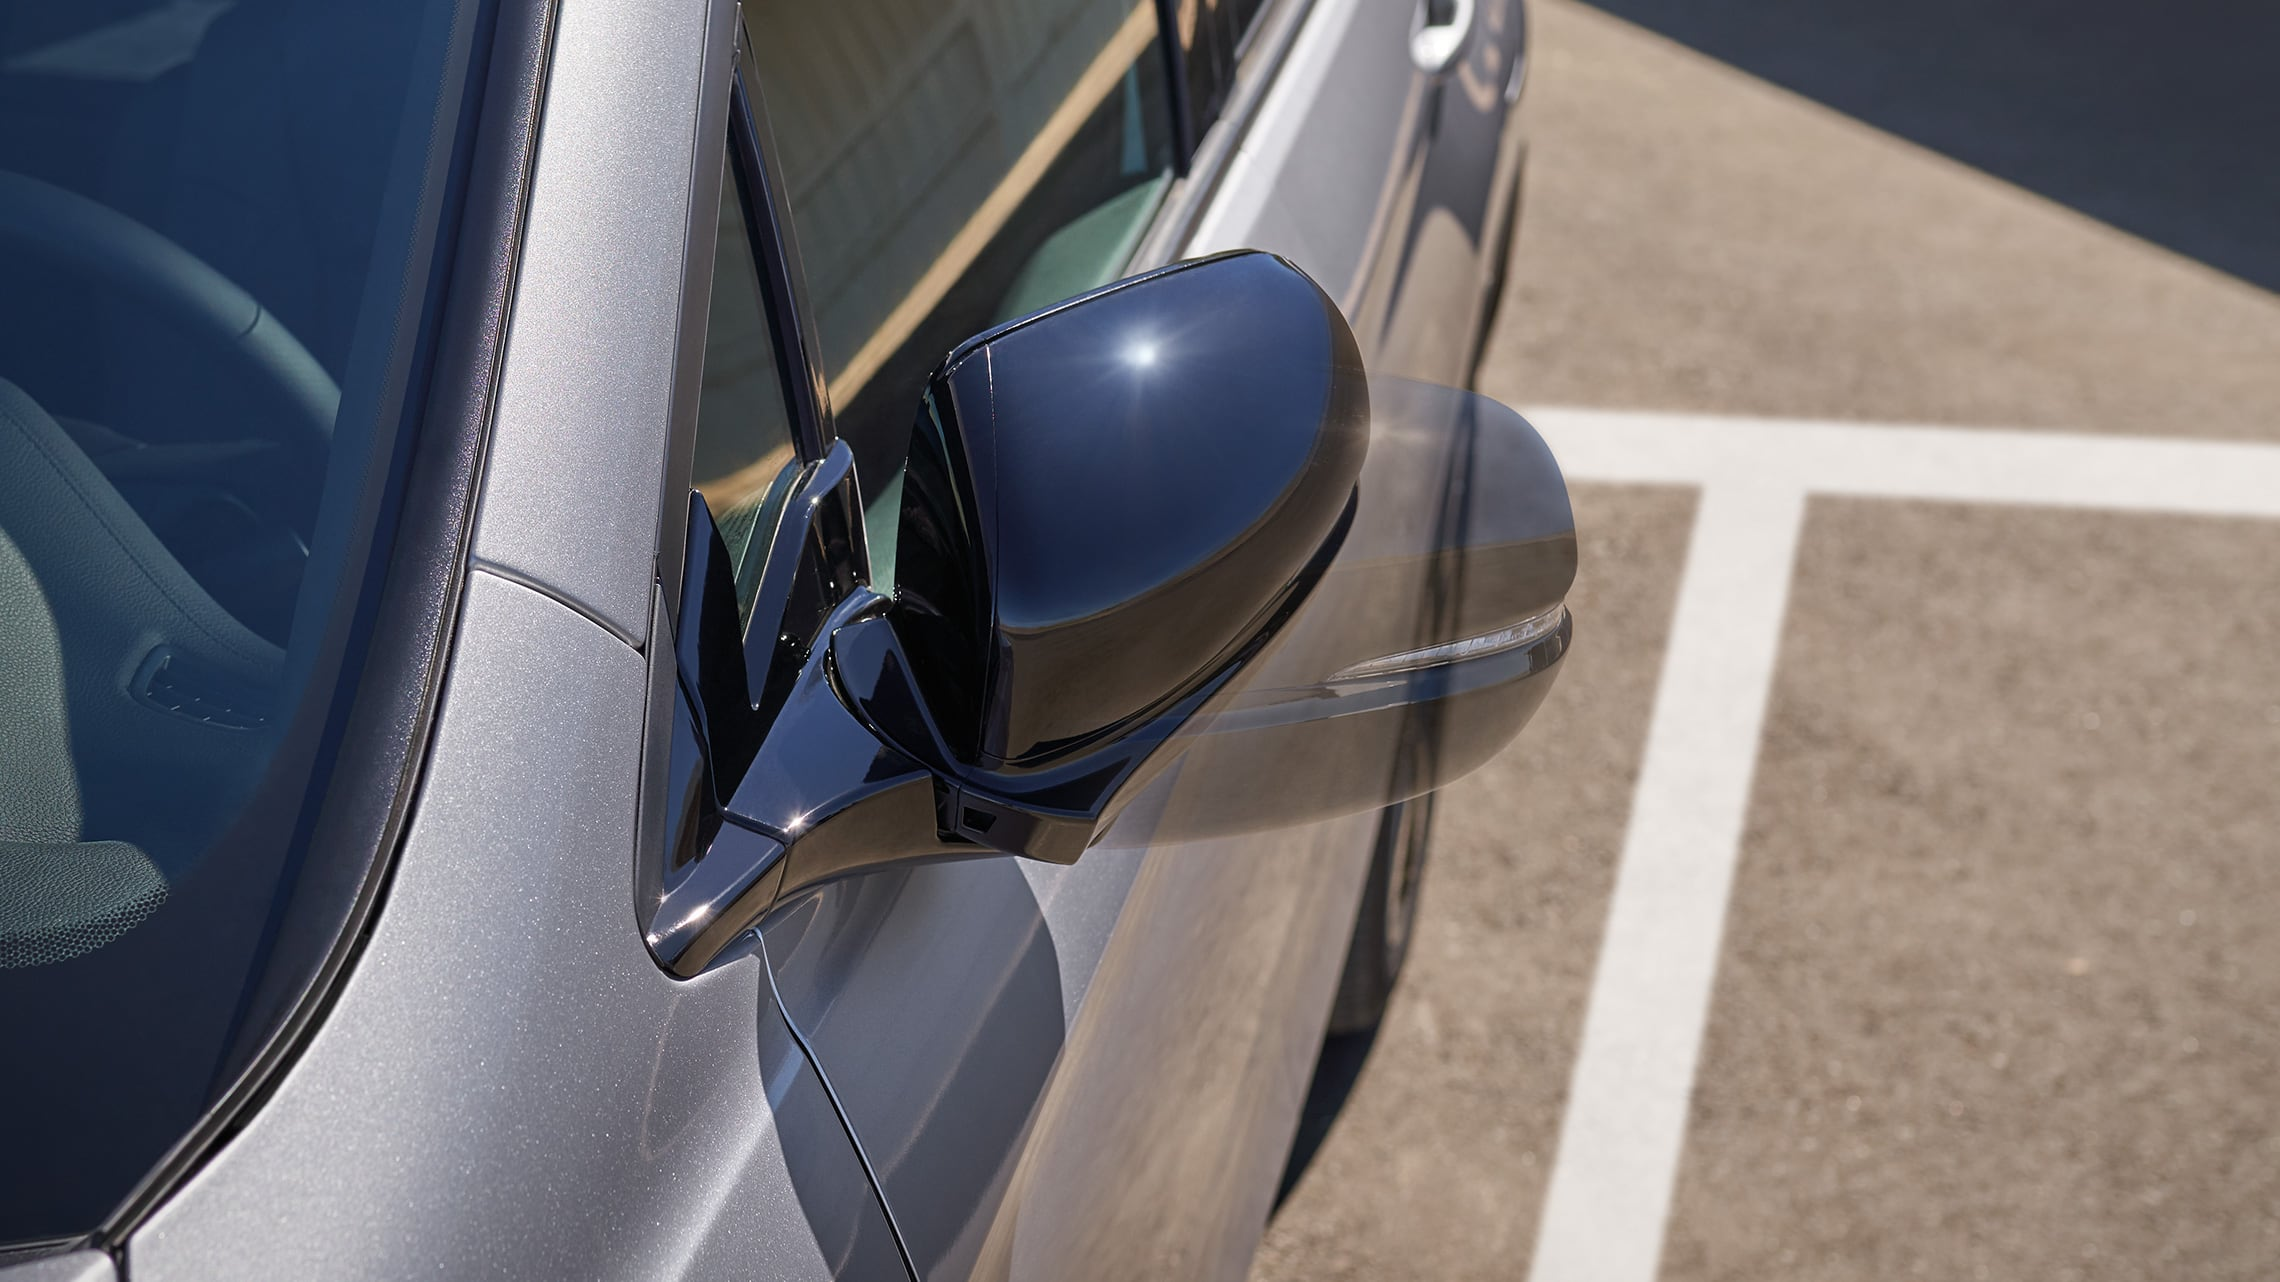 2019 Honda Passport Elite in Lunar Silver Metallic demonstrating movement of the automatic-dimming power folding side mirror.